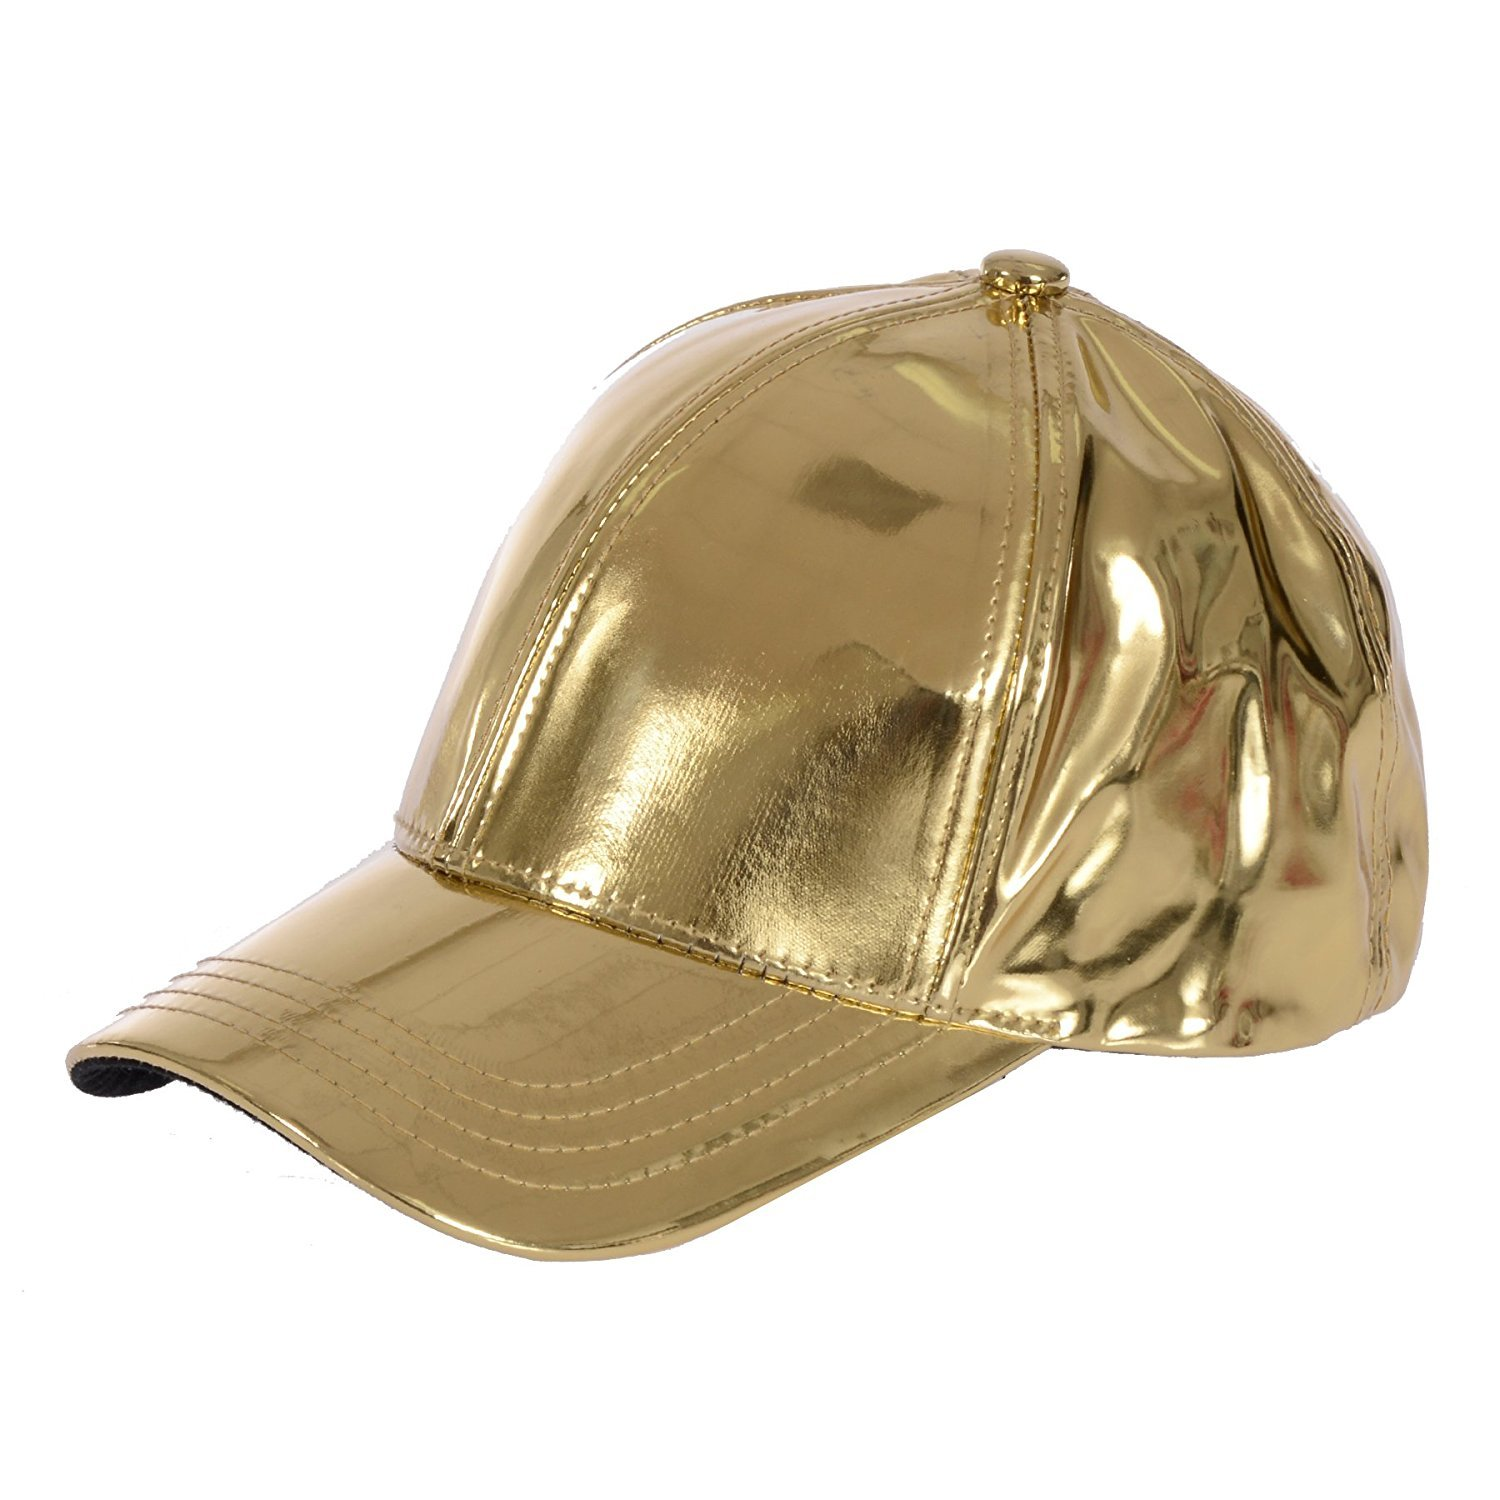 Gary Majdell Sport Unisex Metallic Baseball Cap with Adjustable Strap - Gold